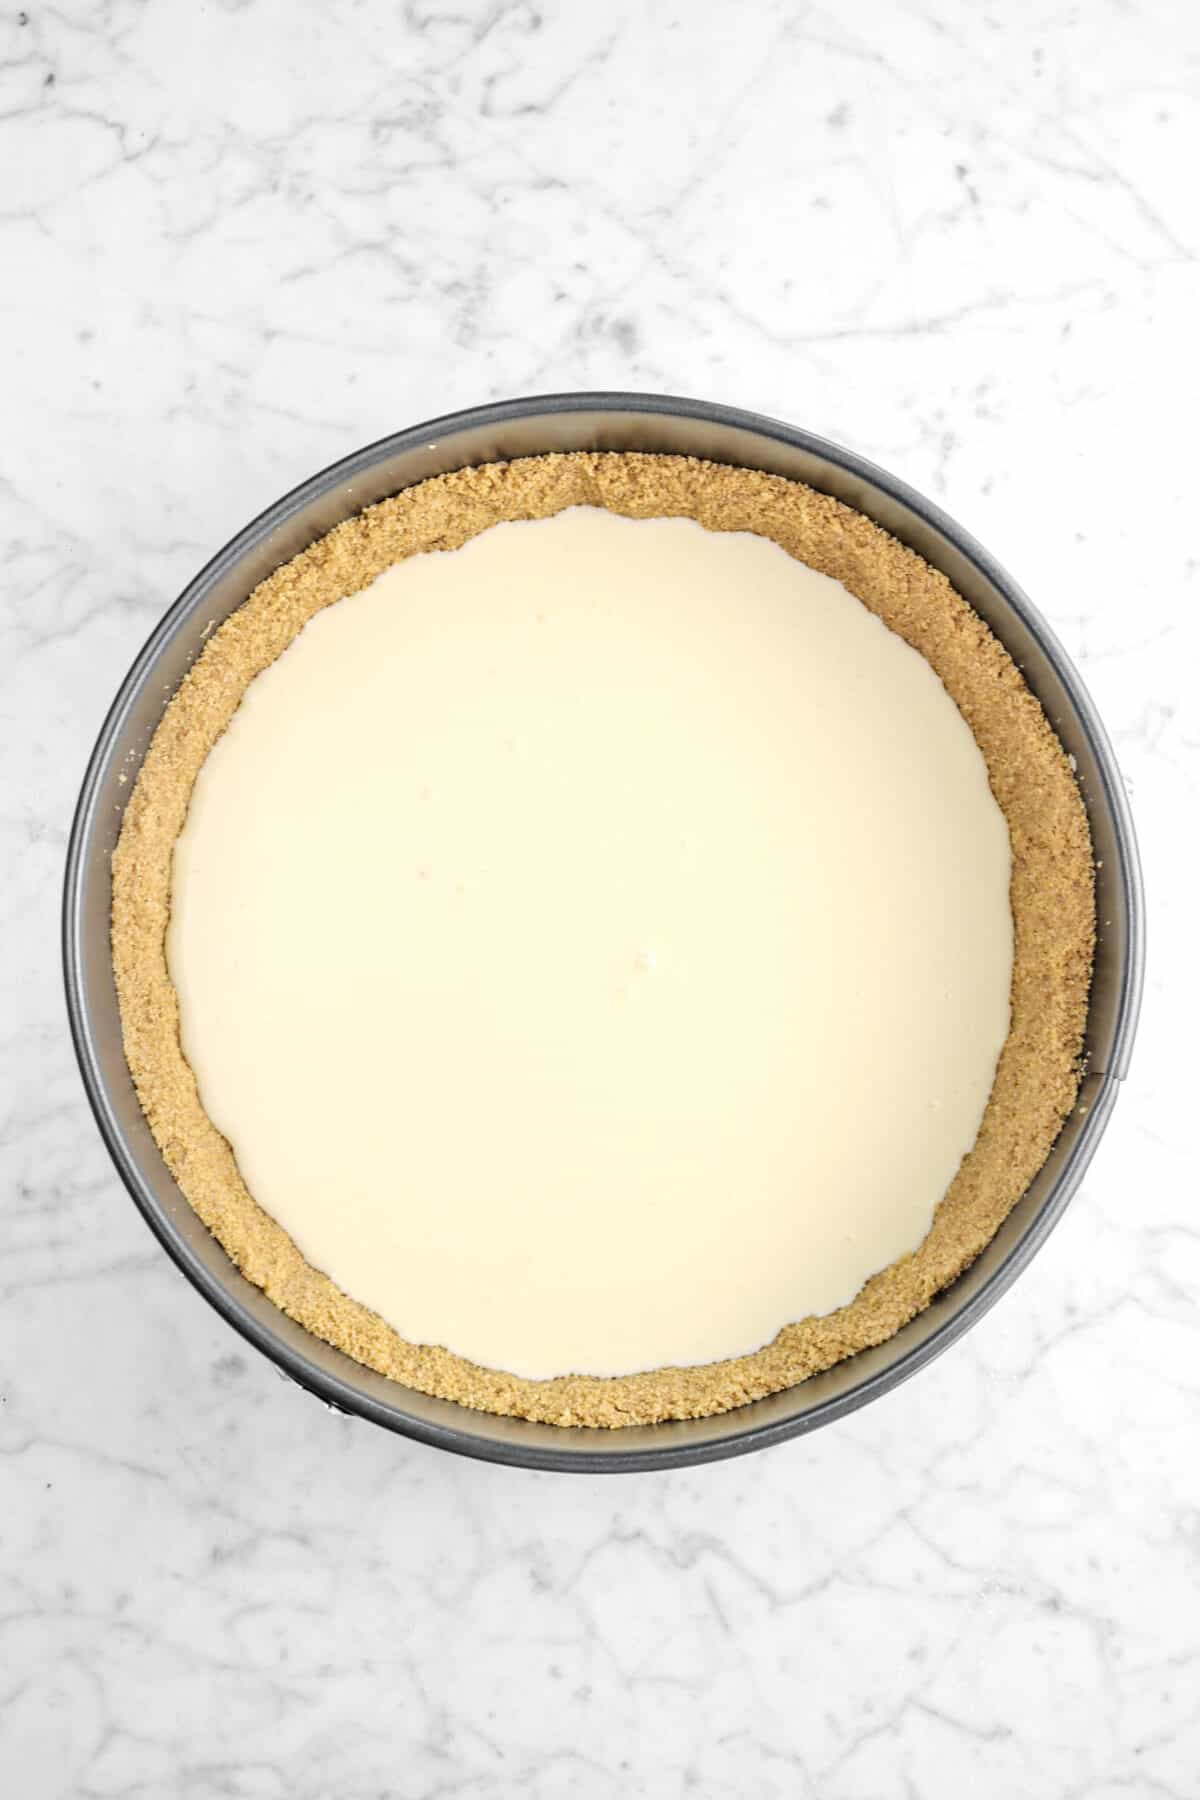 vanilla cheesecake poured into the crust